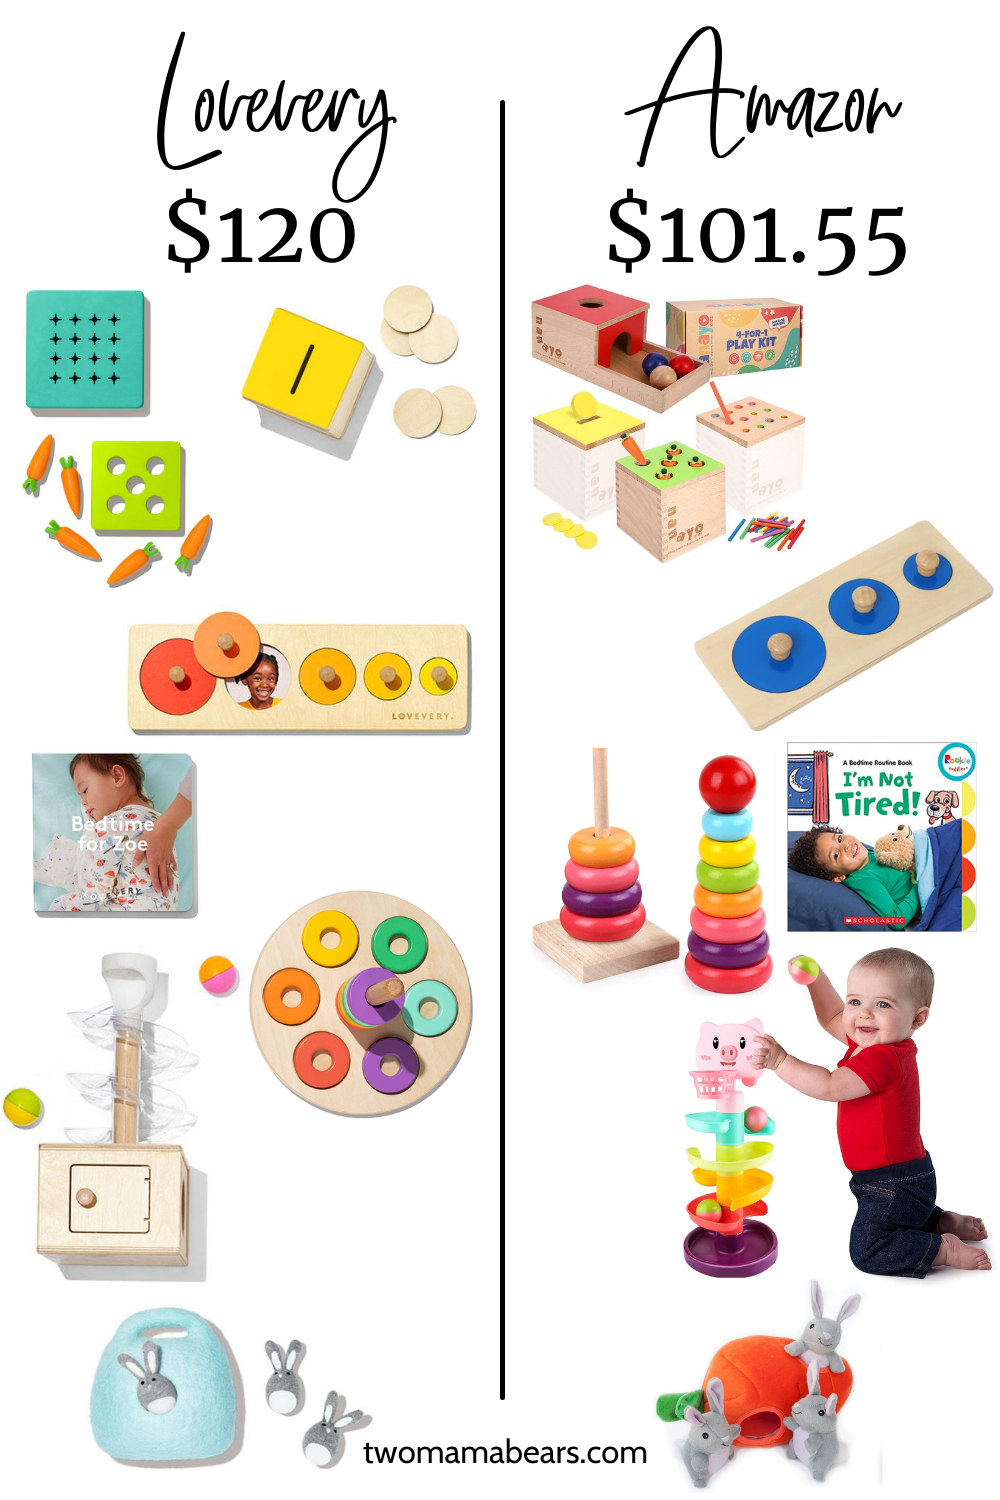 The Babbler play kit from Lovevery - Amazon dupes